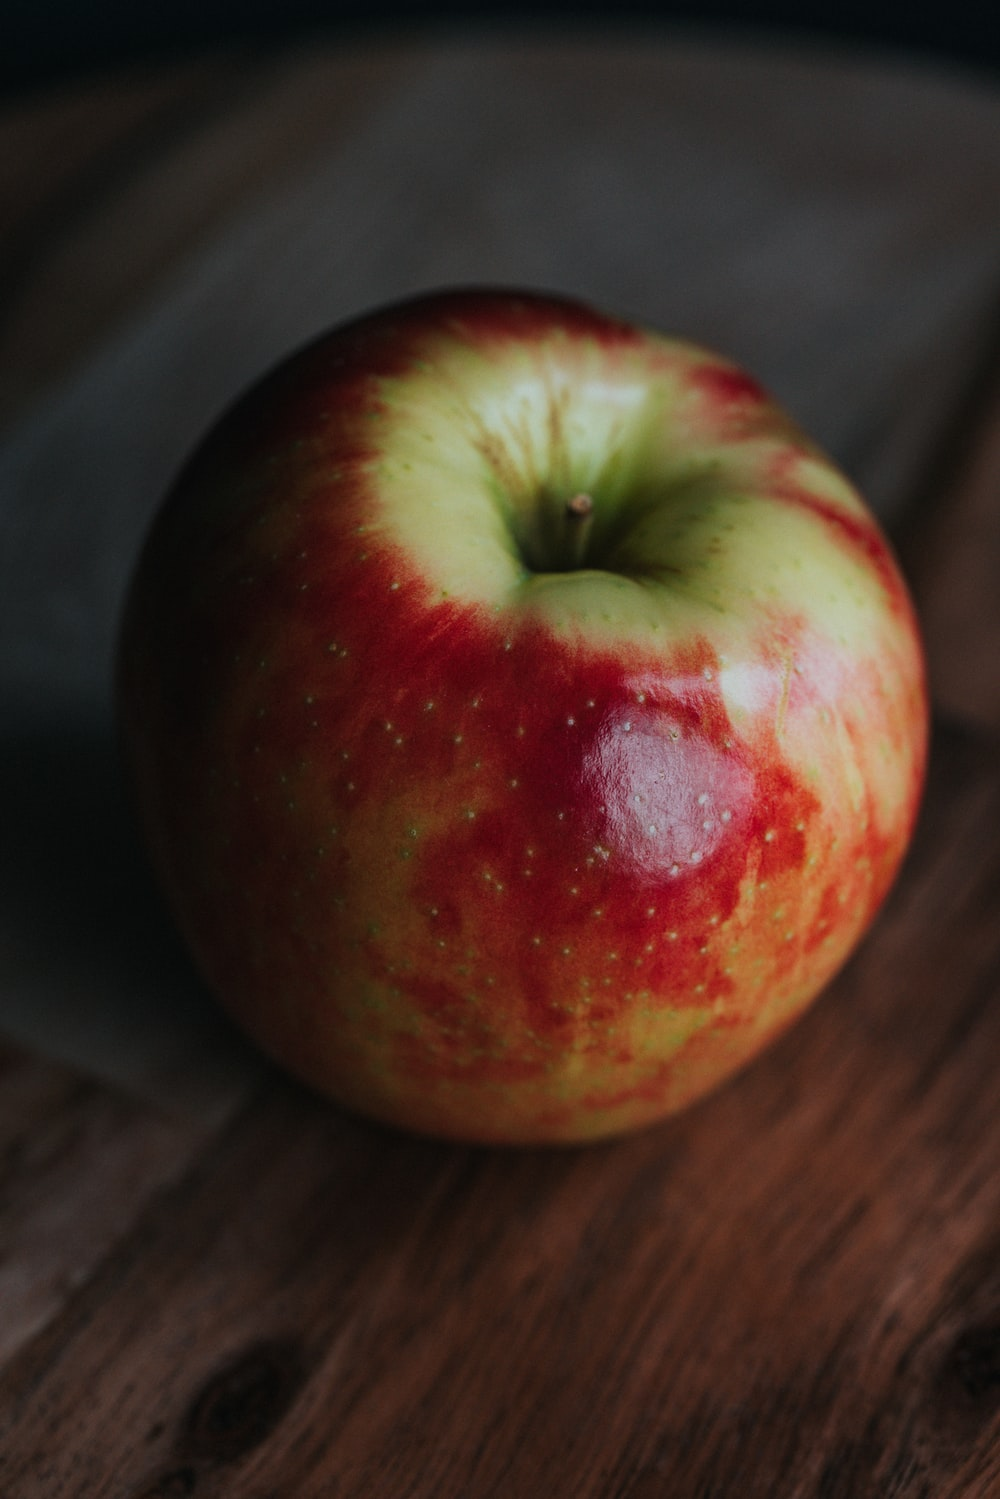 red apple fruit on brown wooden table